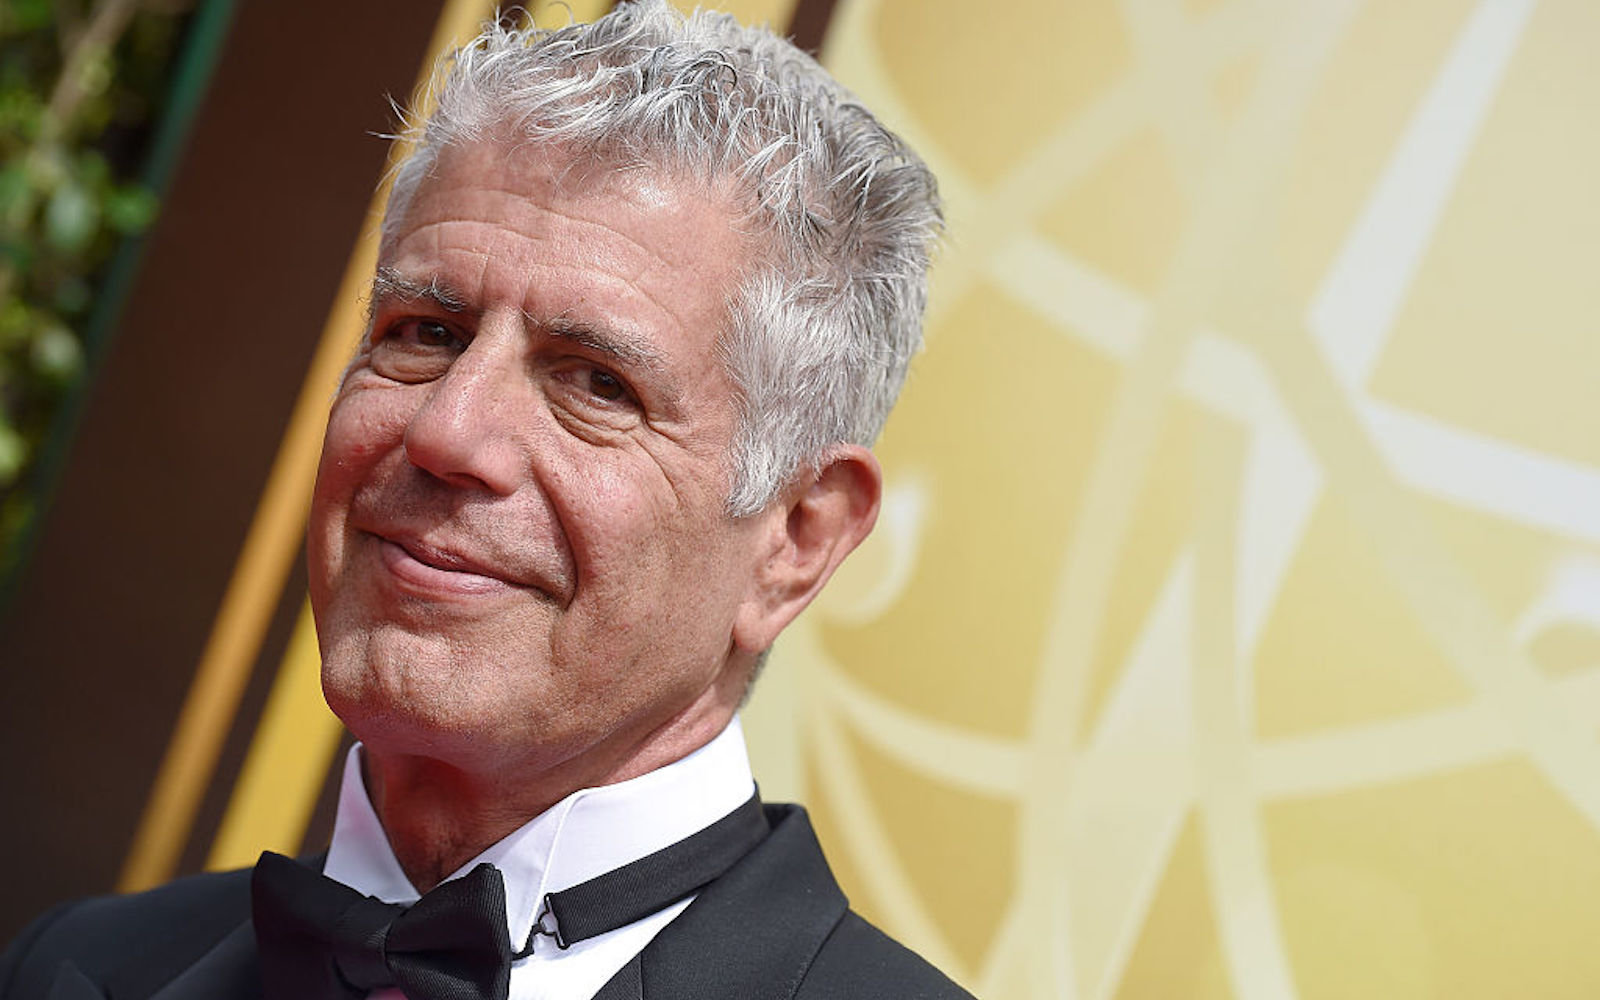 Chef Anthony Bourdain attends the 2015 Creative Arts Emmy Awards at Microsoft Theater on September 12, 2015 in Los Angeles, California.